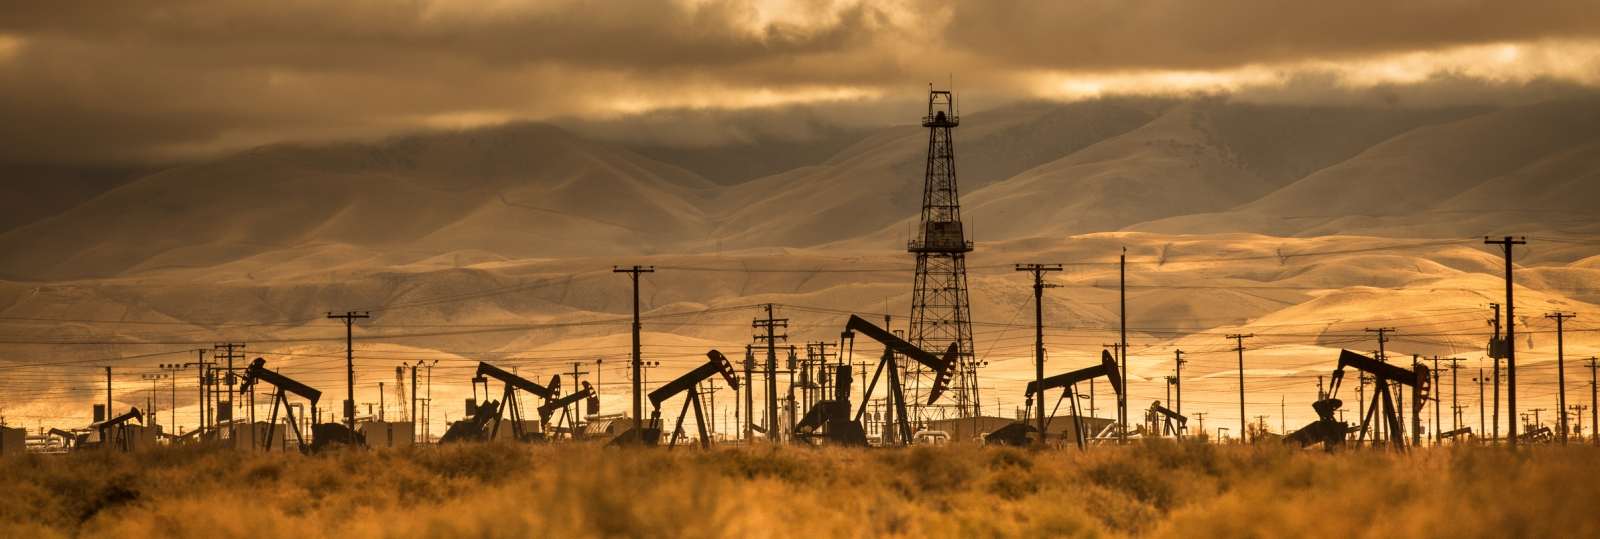 oil well abandoned